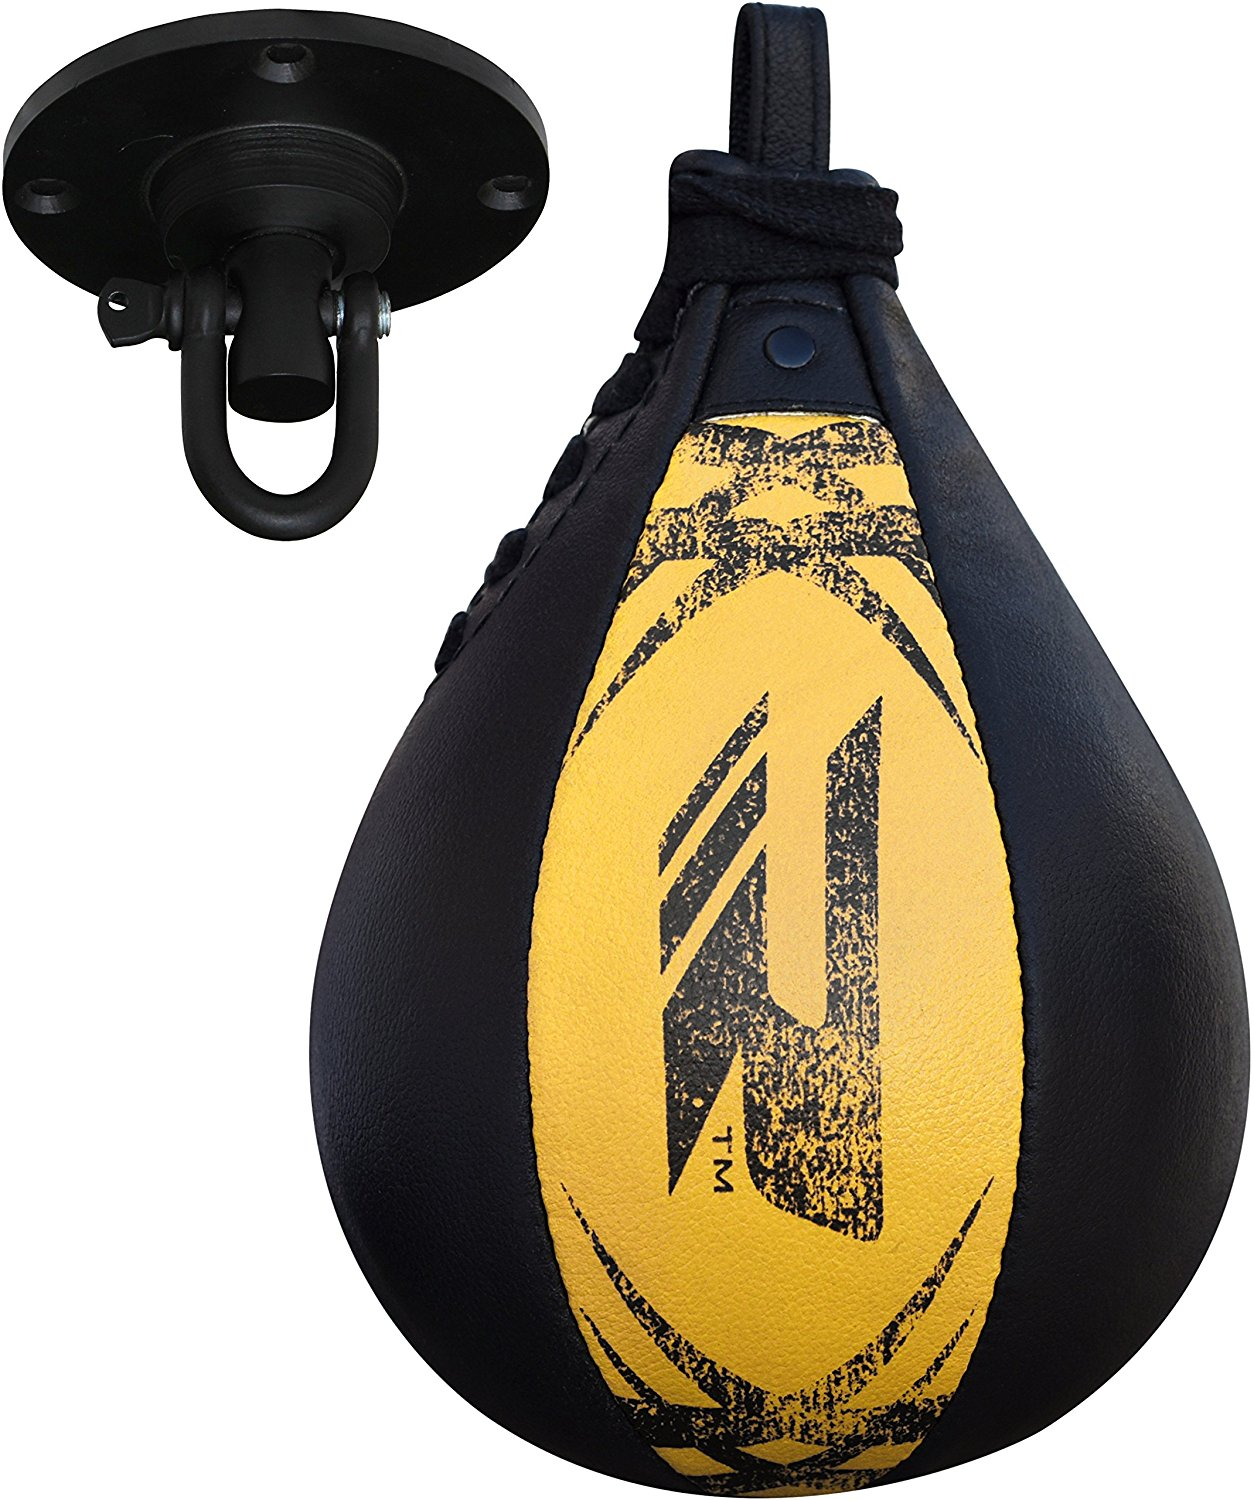 Upgrade BOXING SPEEDBALL MMA PUNCHING BAG w// SWIVEL Speed Ball Training Workout